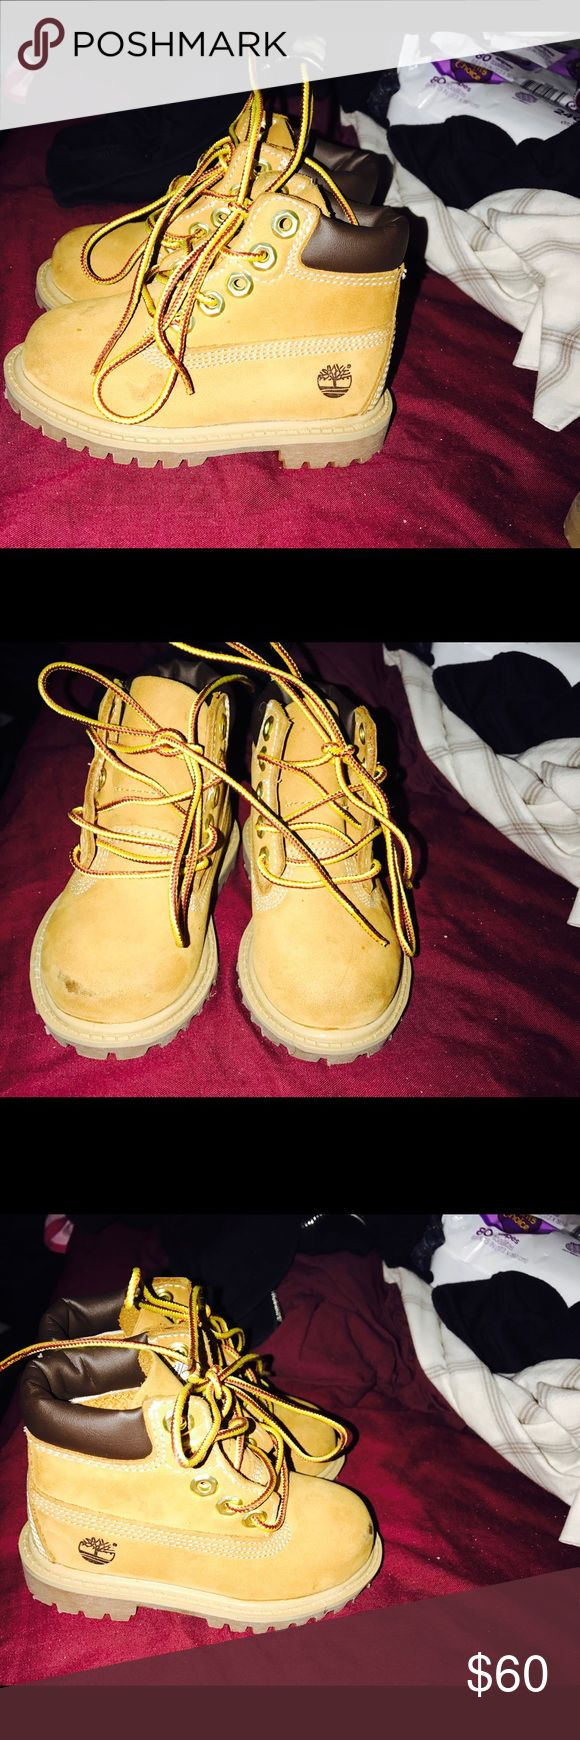 Toddler Timberland Boots size 5c Toddler Timberland Boots size 5c Timberland Shoes Boots